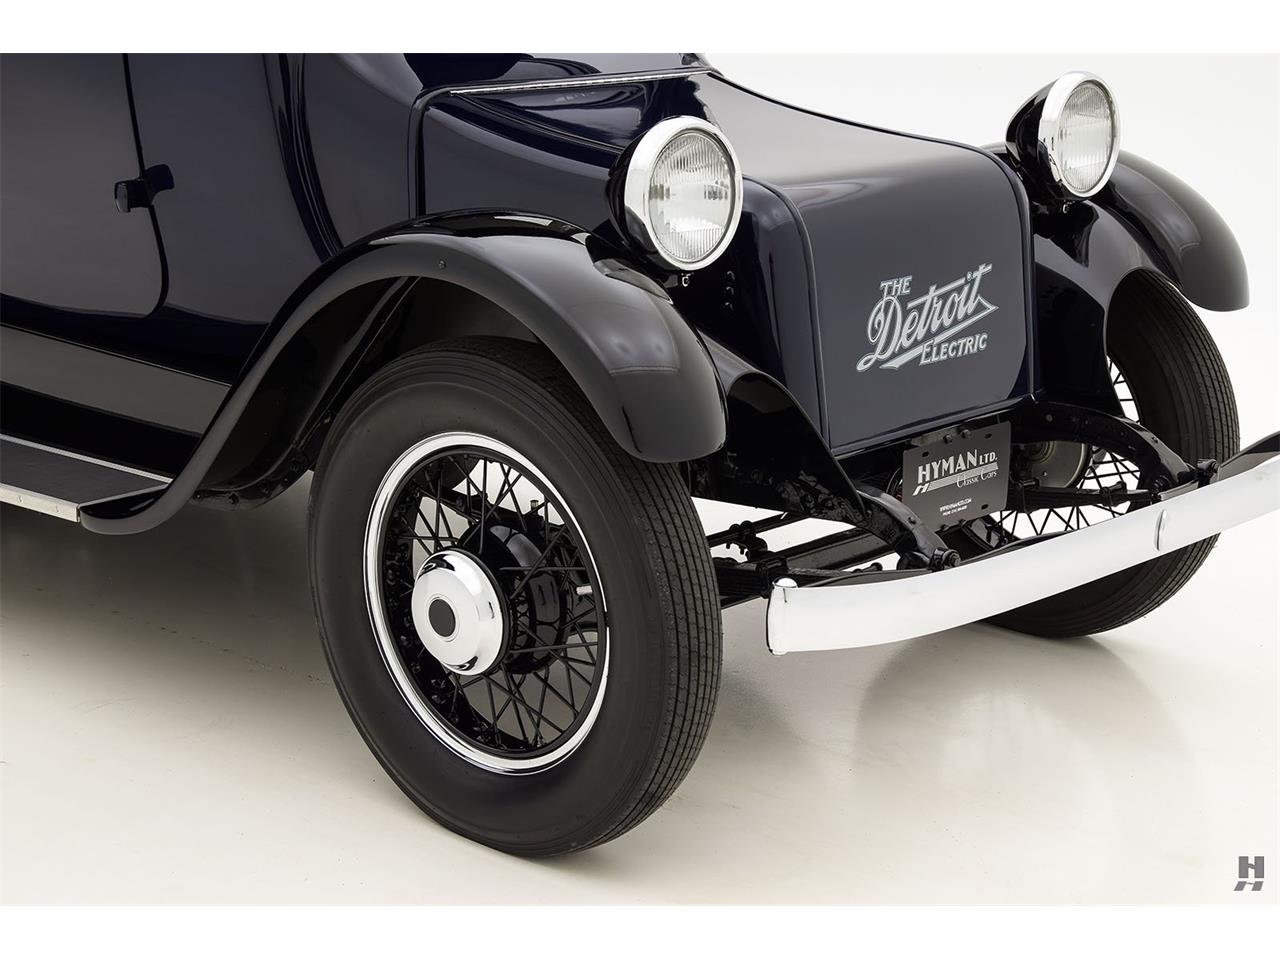 Large Picture of Classic 1931 Detroit Electric Model 97 located in Missouri - $99,500.00 Offered by Hyman Ltd. Classic Cars - L0G2